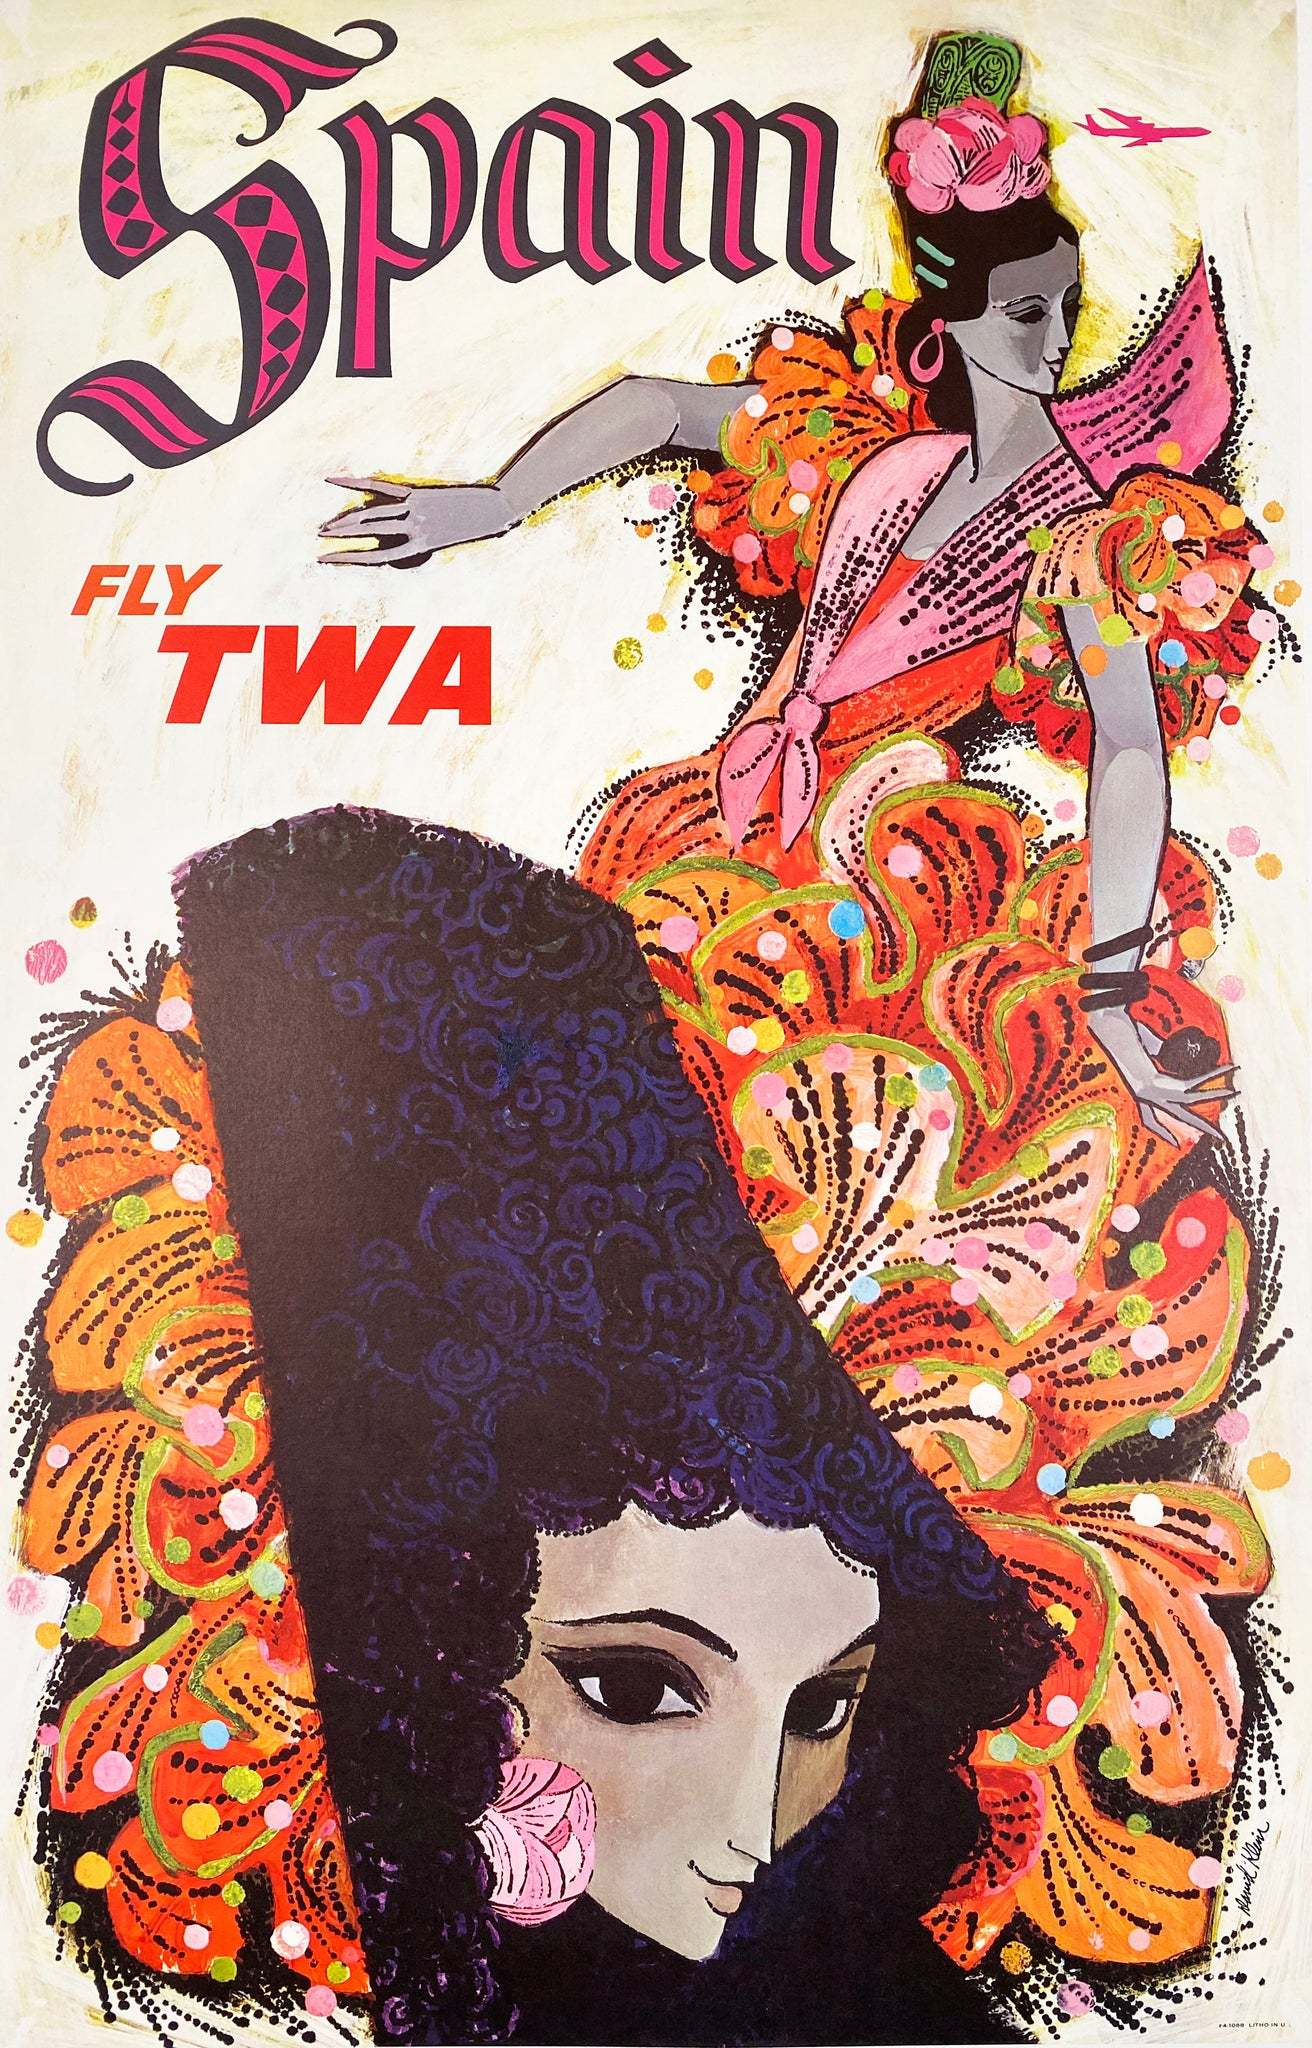 Spain TWA - Vintage Travel Poster 1960